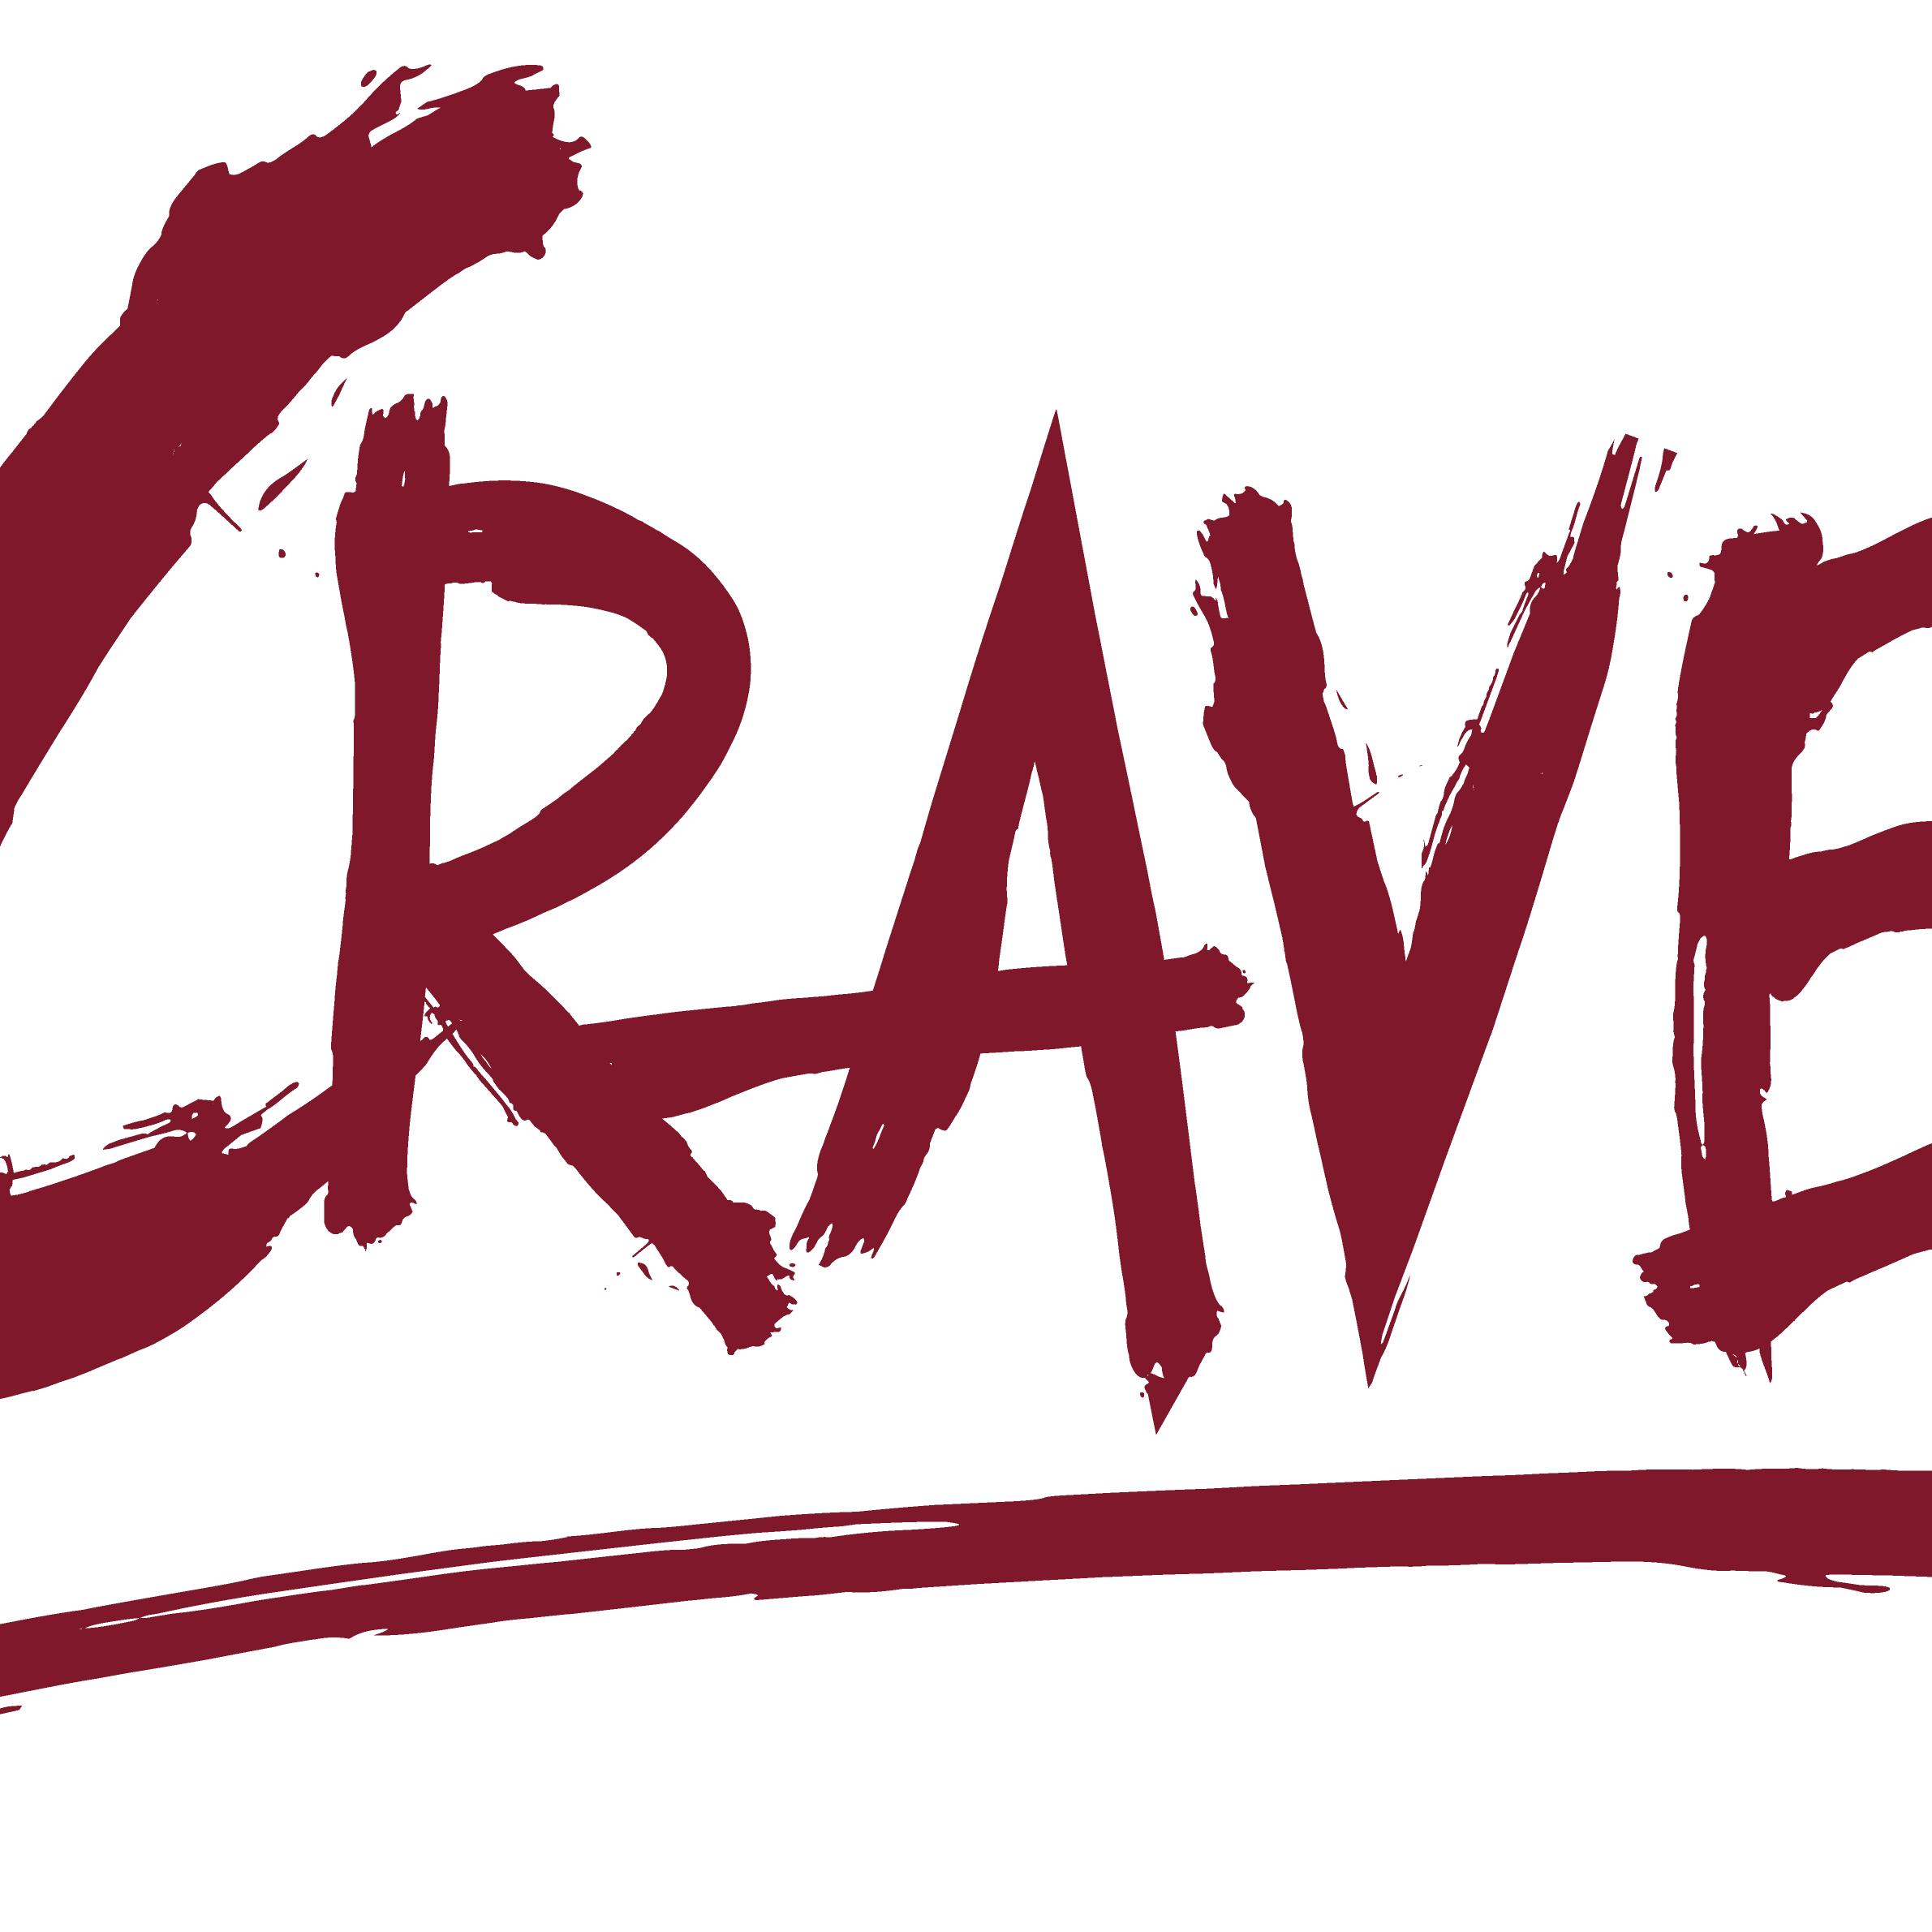 Restaurant Catering Crave Others Logo Events PNG Image